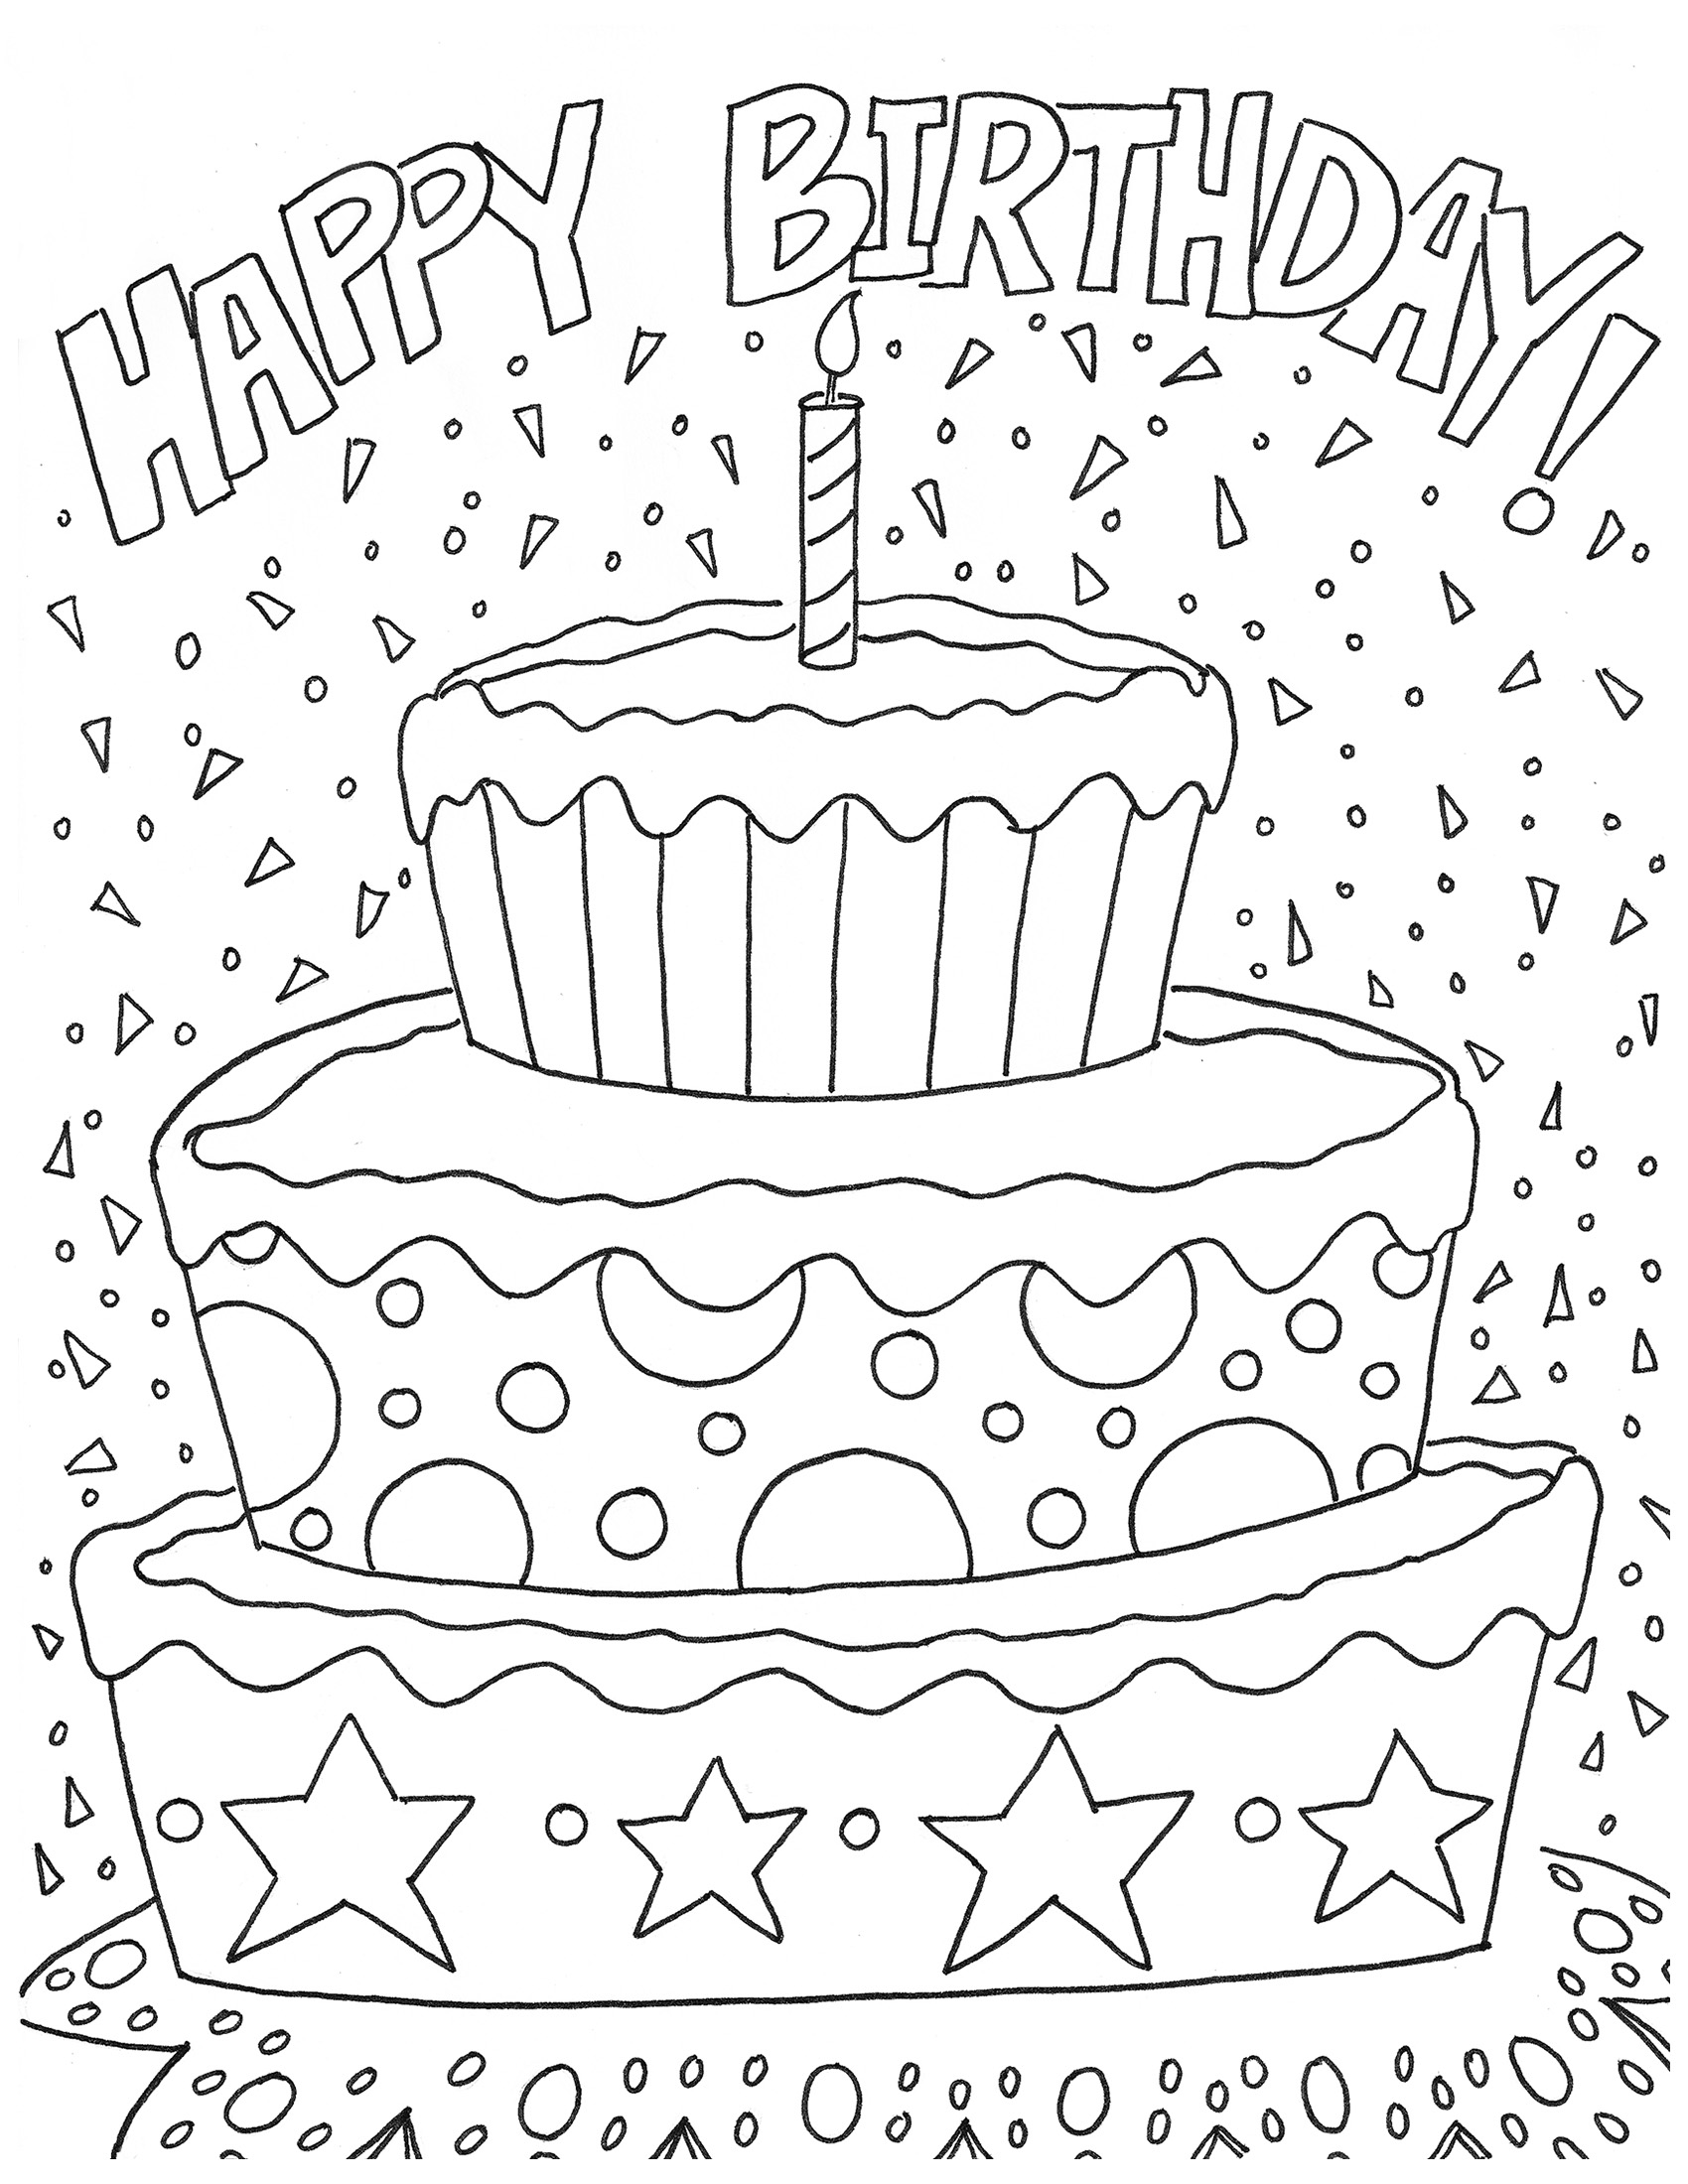 Free happy birthday coloring page and hershey for Birthday coloring page